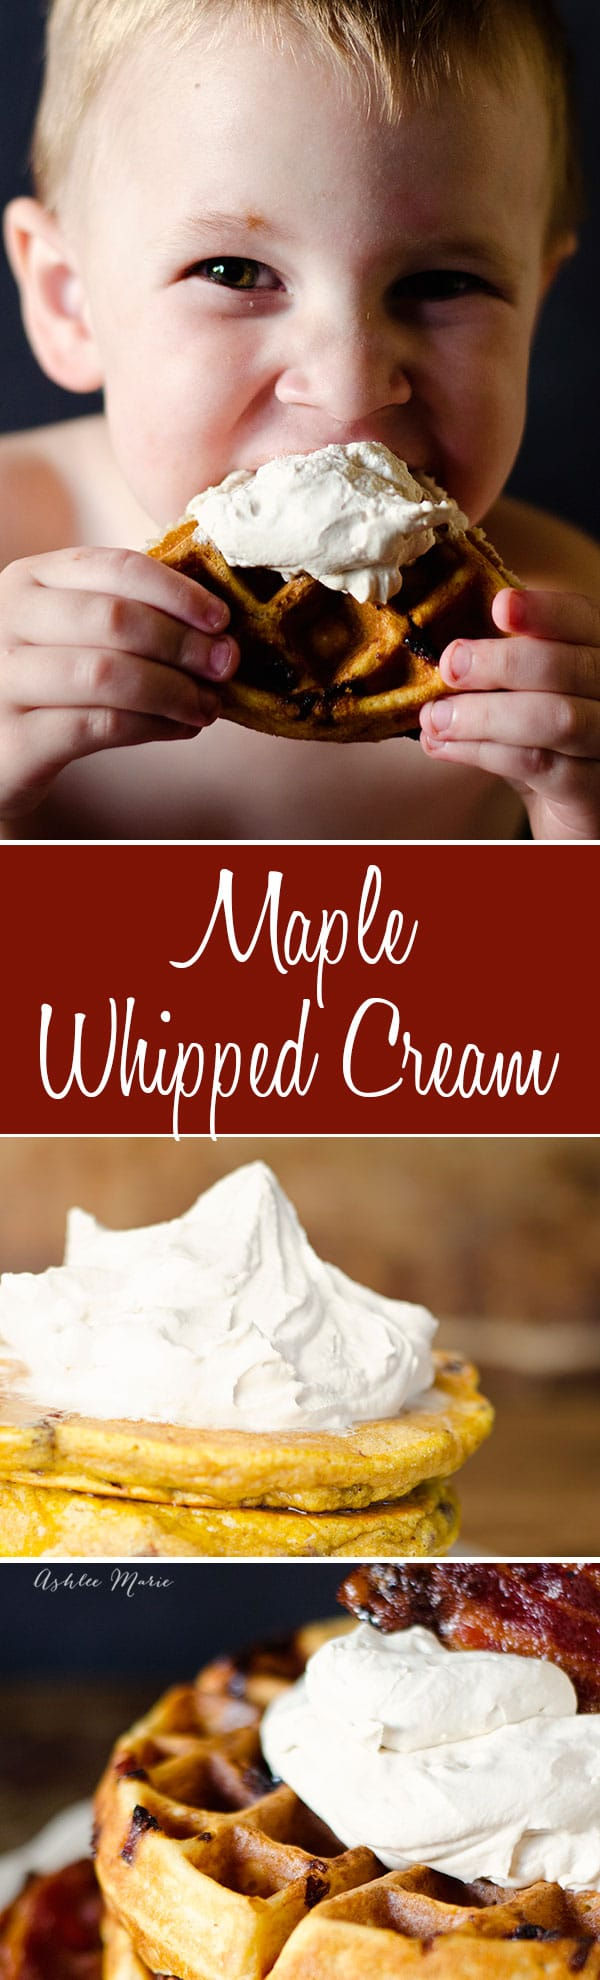 I love flavored whipped cream, peppermint, chocolate and my new favorite maple whipped cream